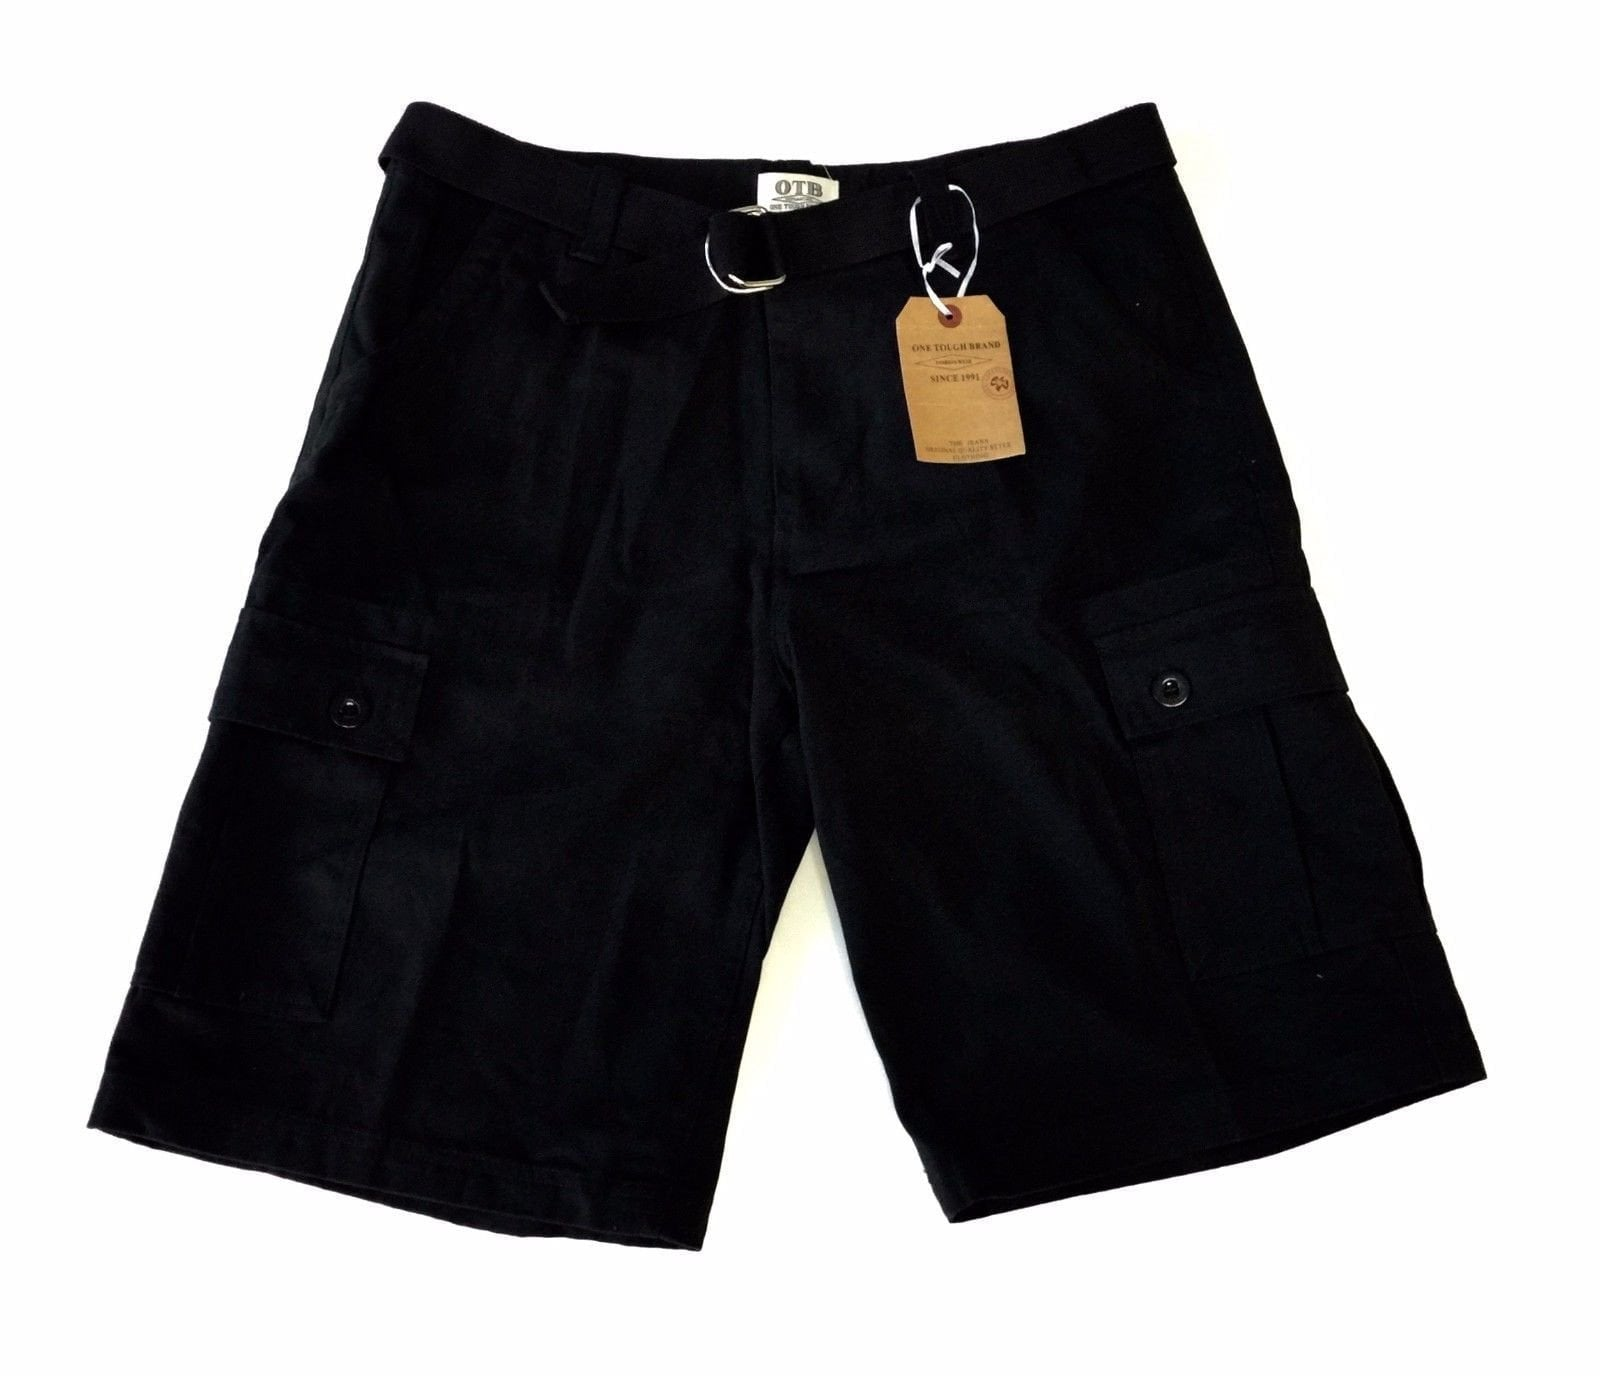 NEW NWT MEN'S COTTON CARGO SHORTS RELAXED FIT BLACK WITH BELT LOOP 6 POCKET